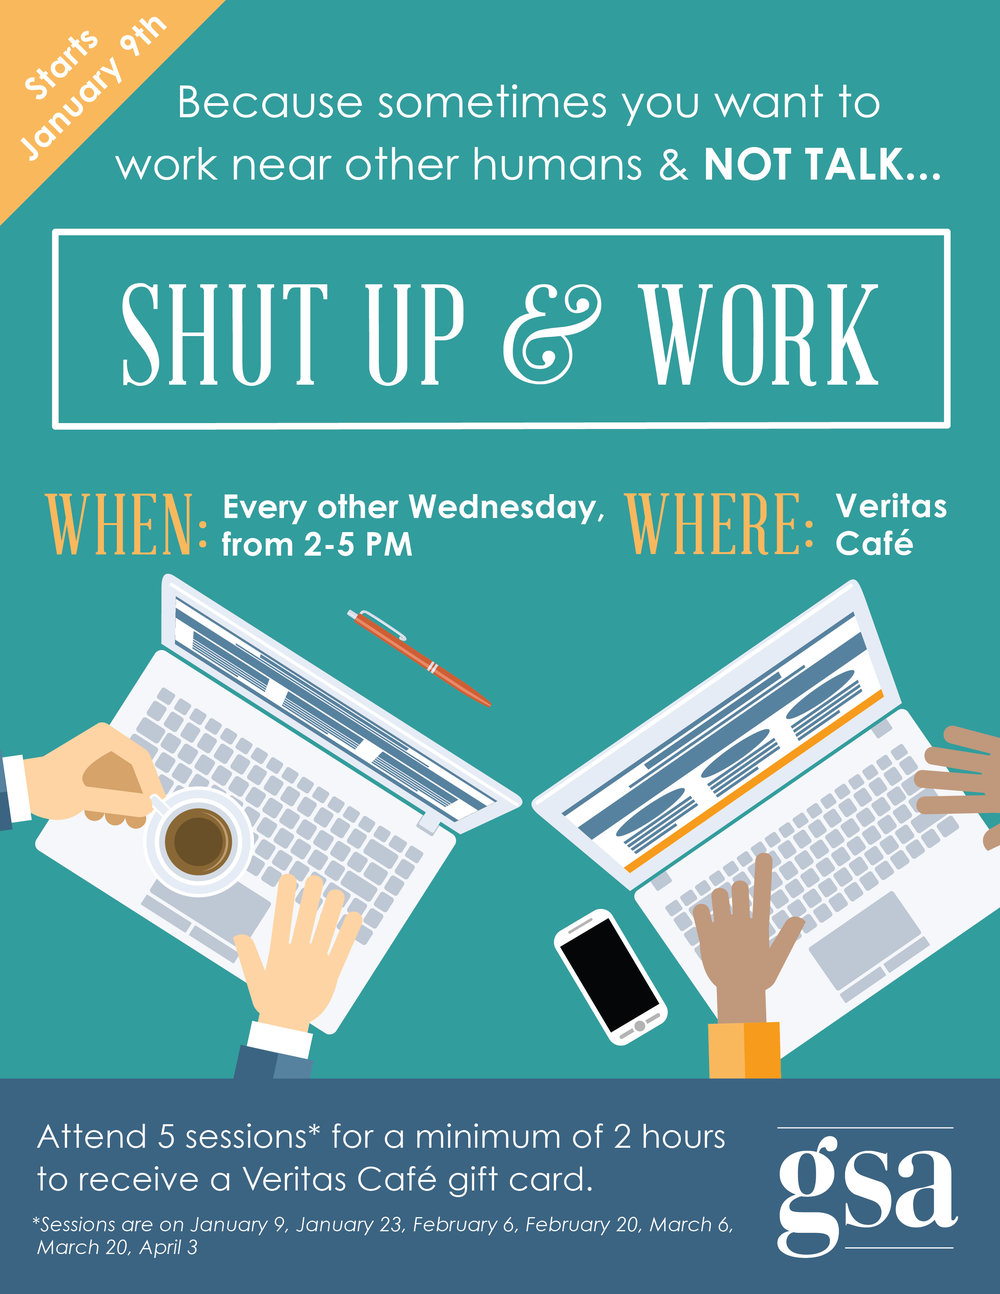 Because sometimes you want to work near other humans and not talk… Shut Up & Work. Every other Wednesday from 2-5pm in Veritas Cafe. Attend 5 sessions for a minimum of 2 hours to receive a Veritas Cafe gift card. Sessions are on January 9, January 23, February 6, February 20, March 6, March 20, April 3